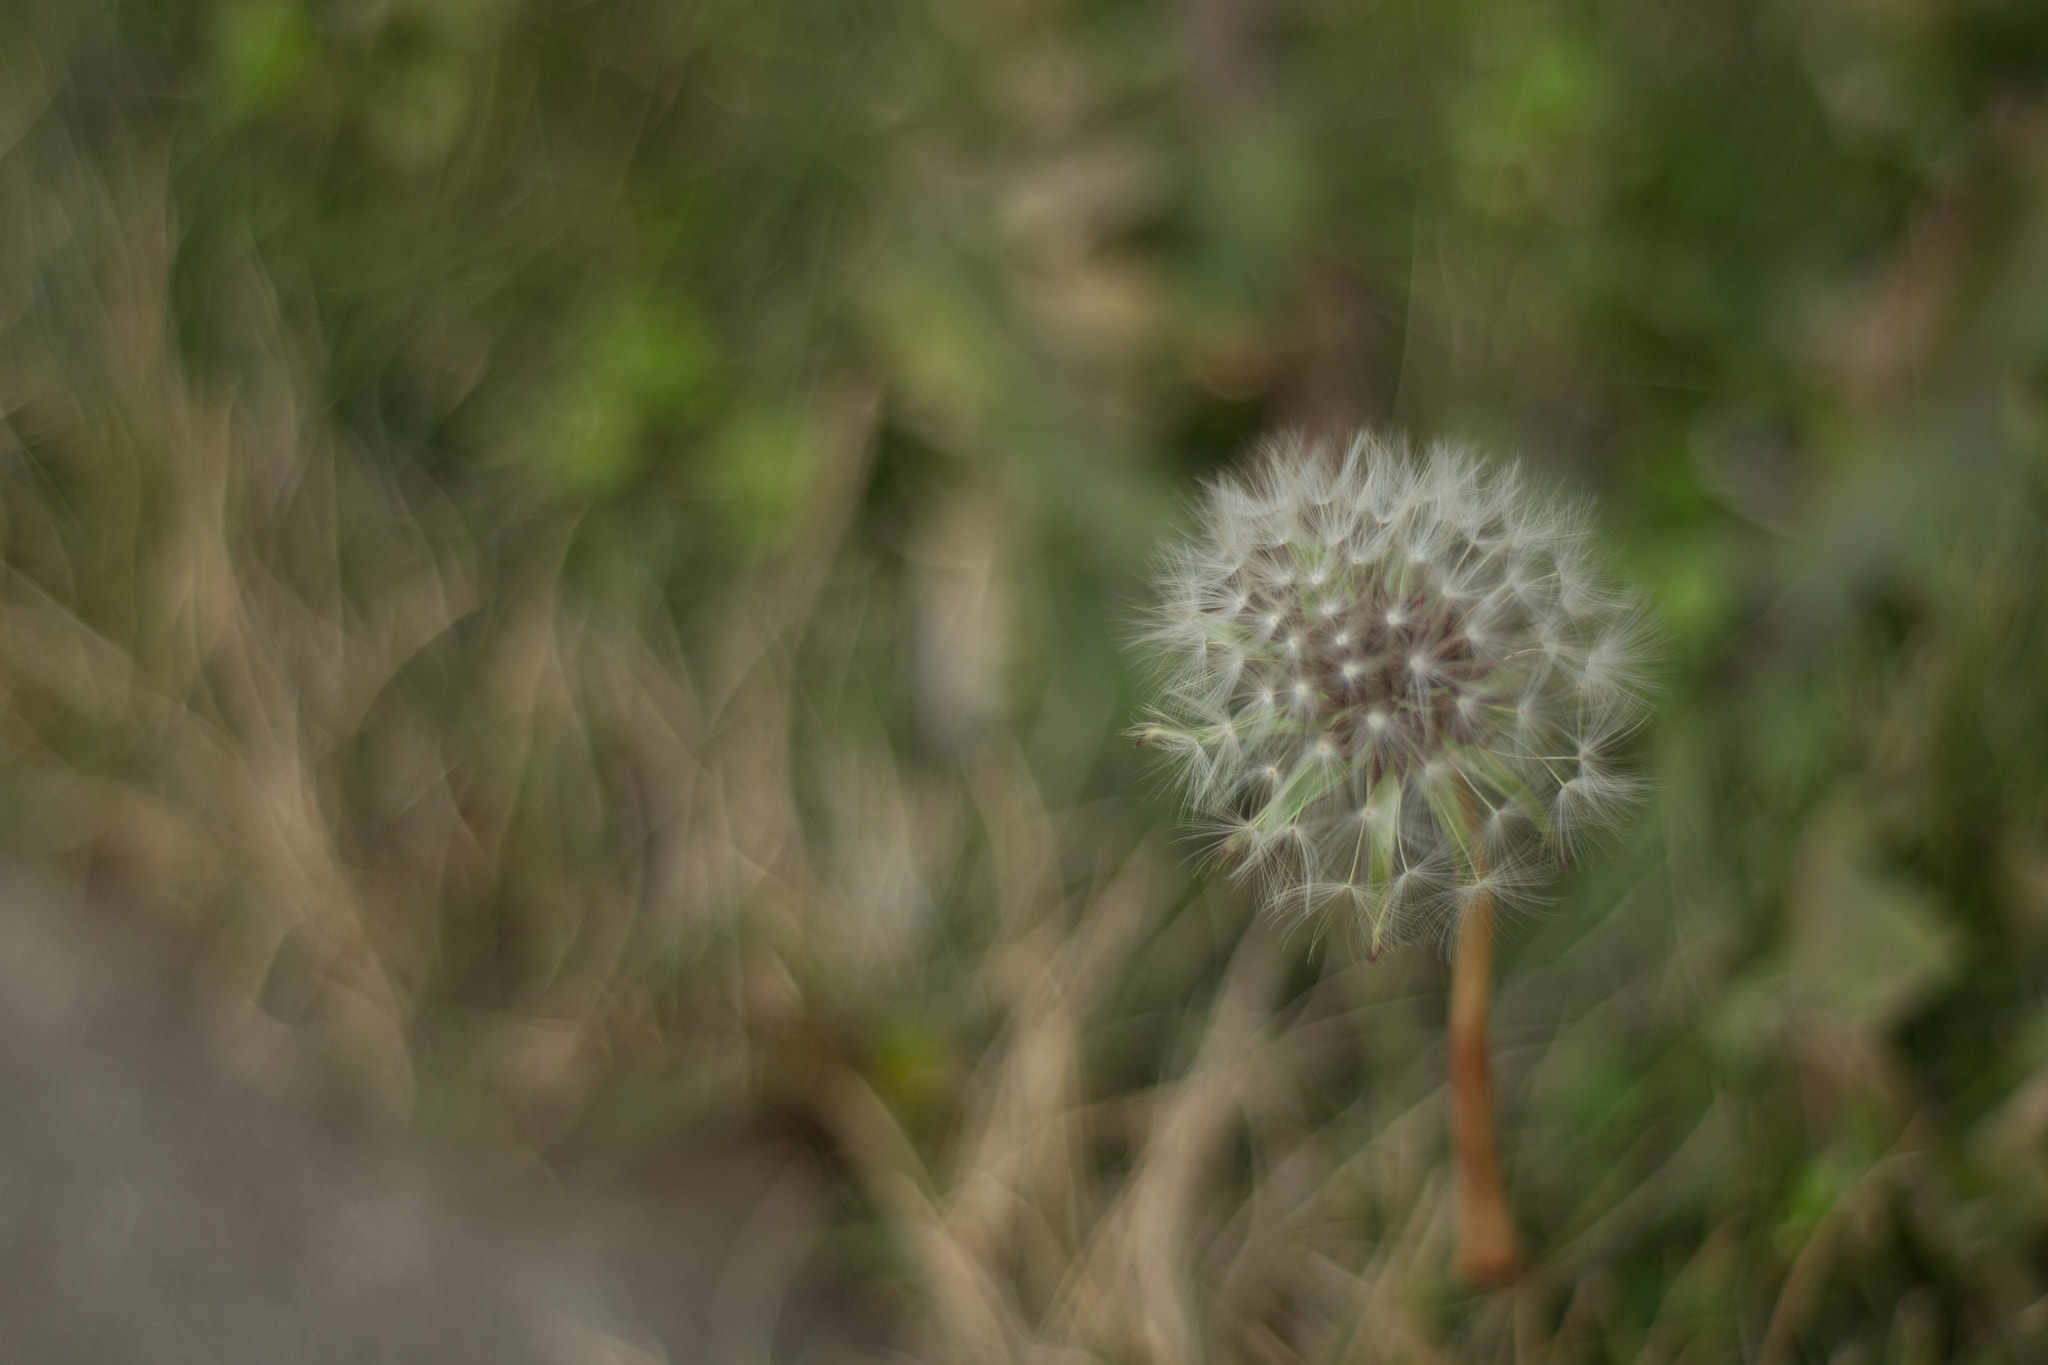 Photograph 蒲公英(Dandelion) by Liao Wujia on 500px